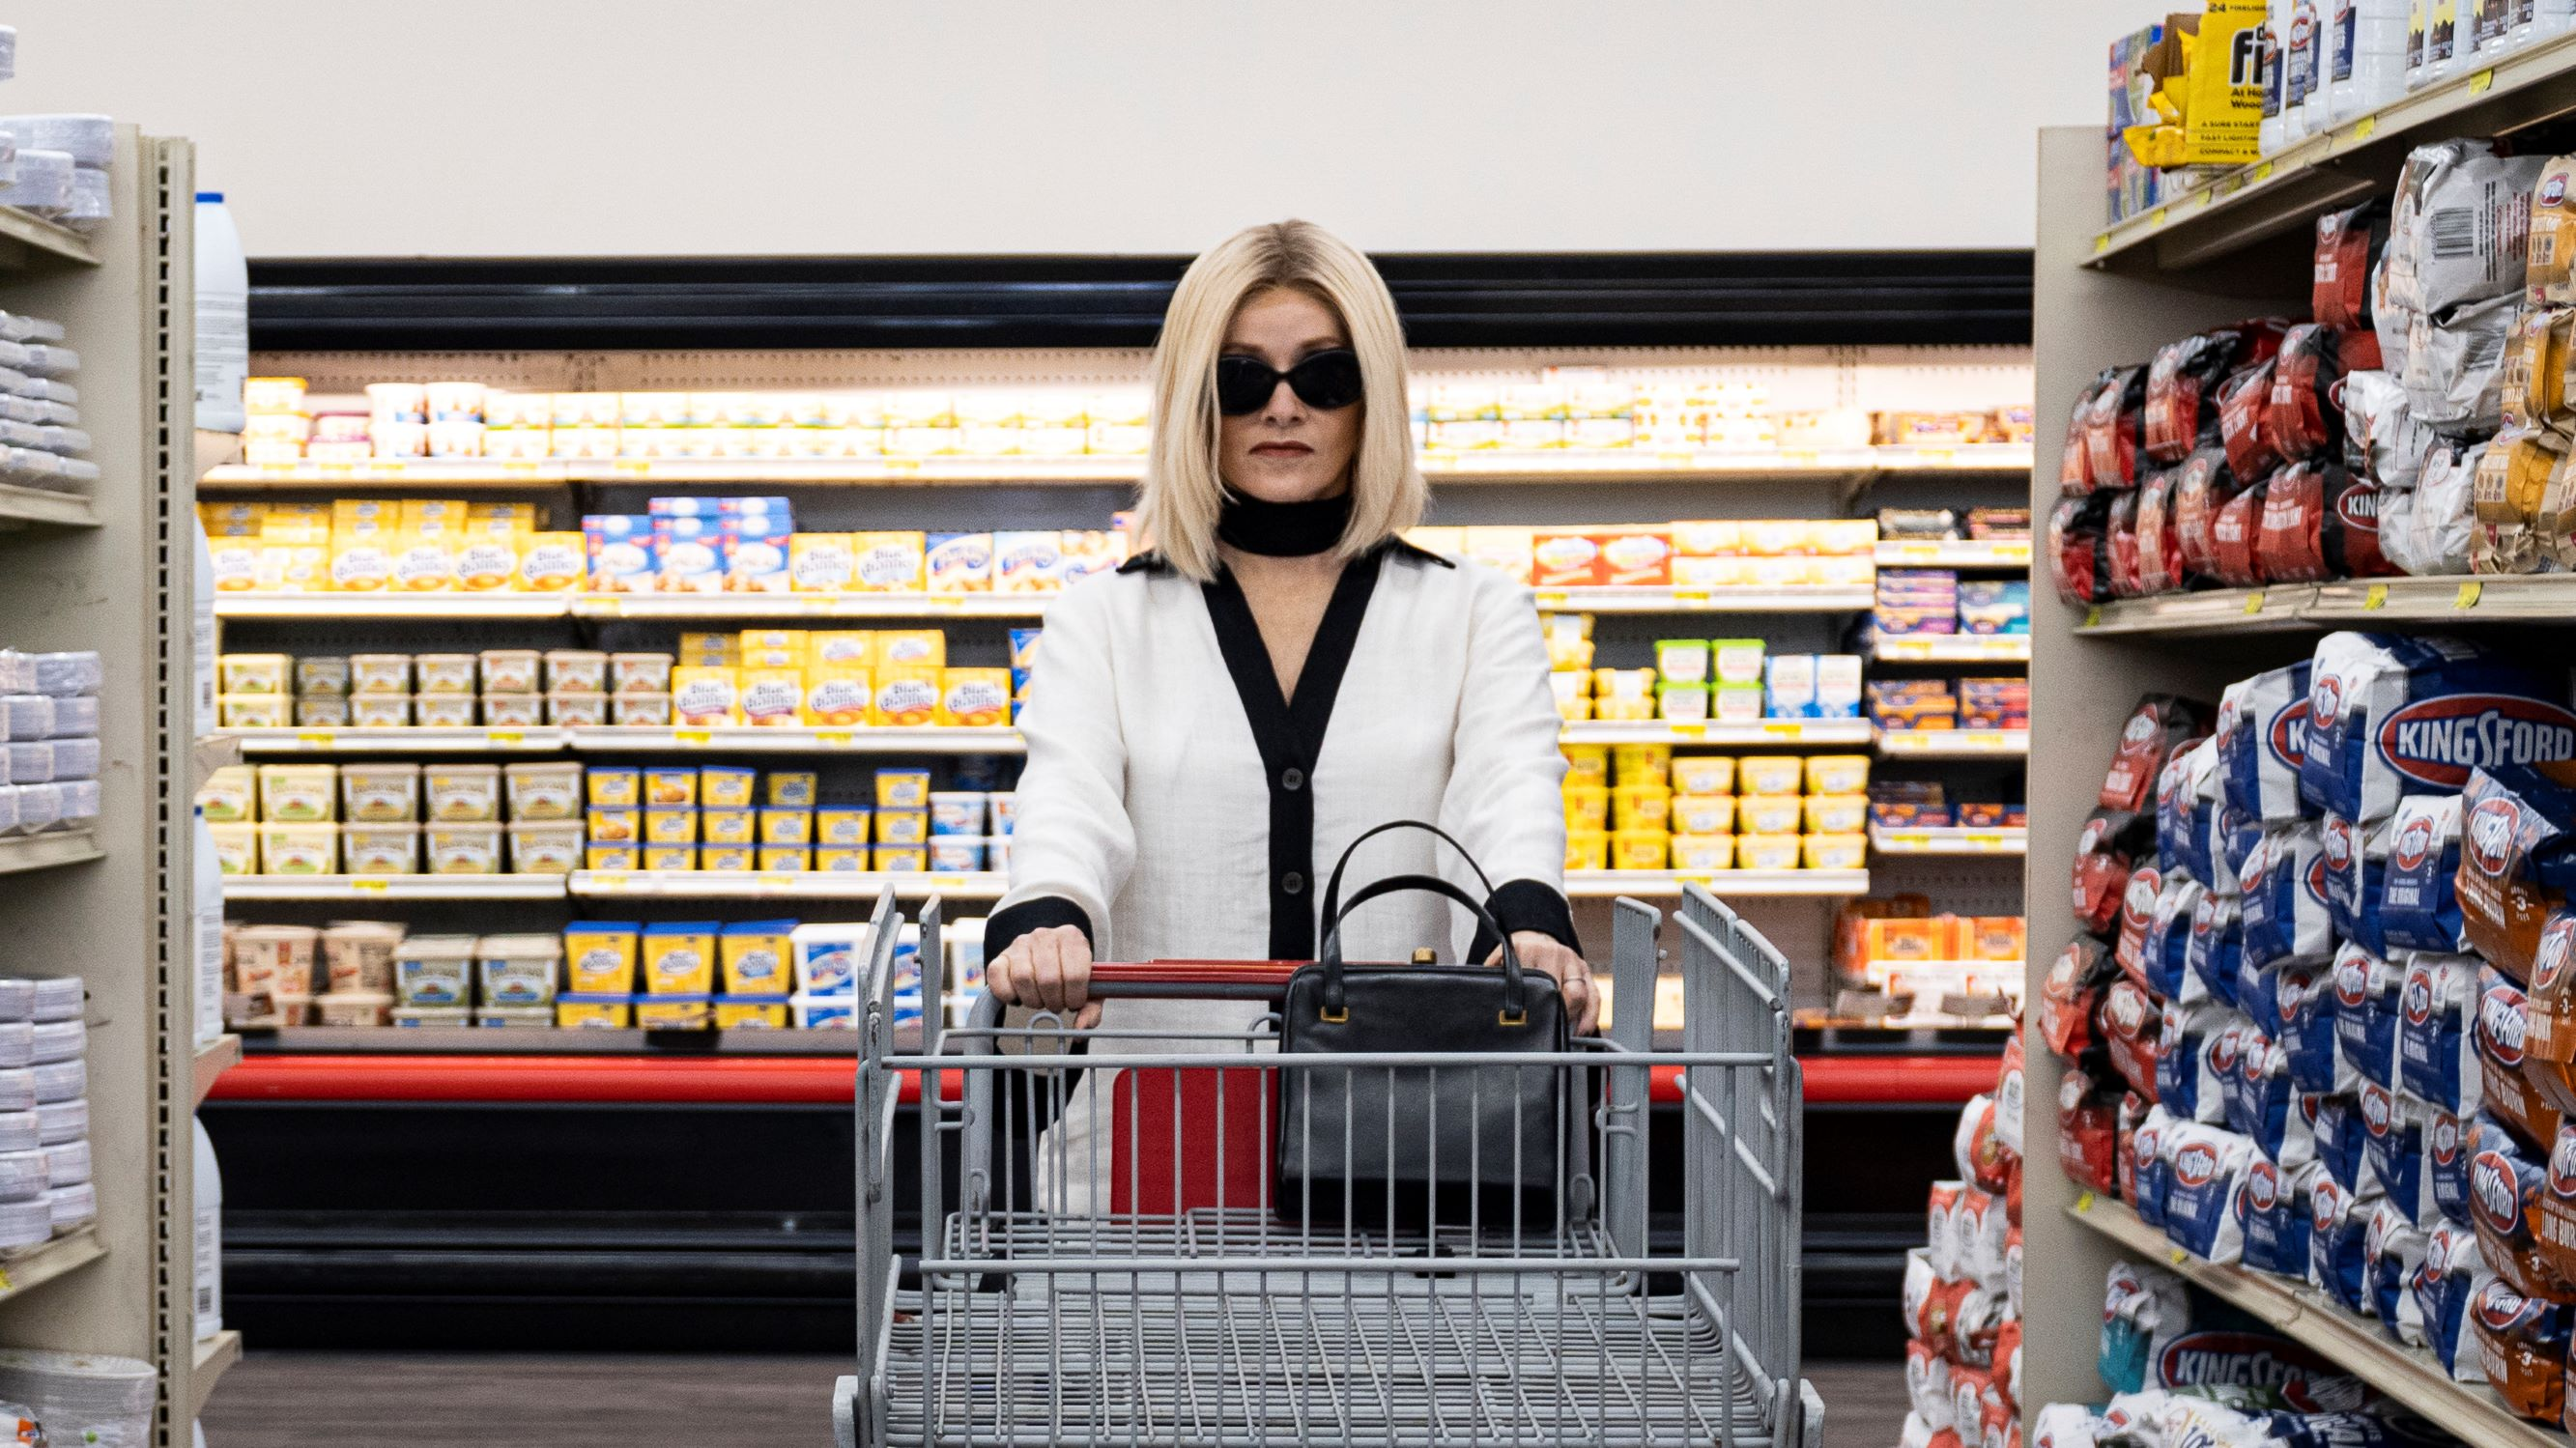 Barbara Crampton wearing sunglasses inside pushing a shopping cart at a grocery store in the horror movie Jakob's Wife